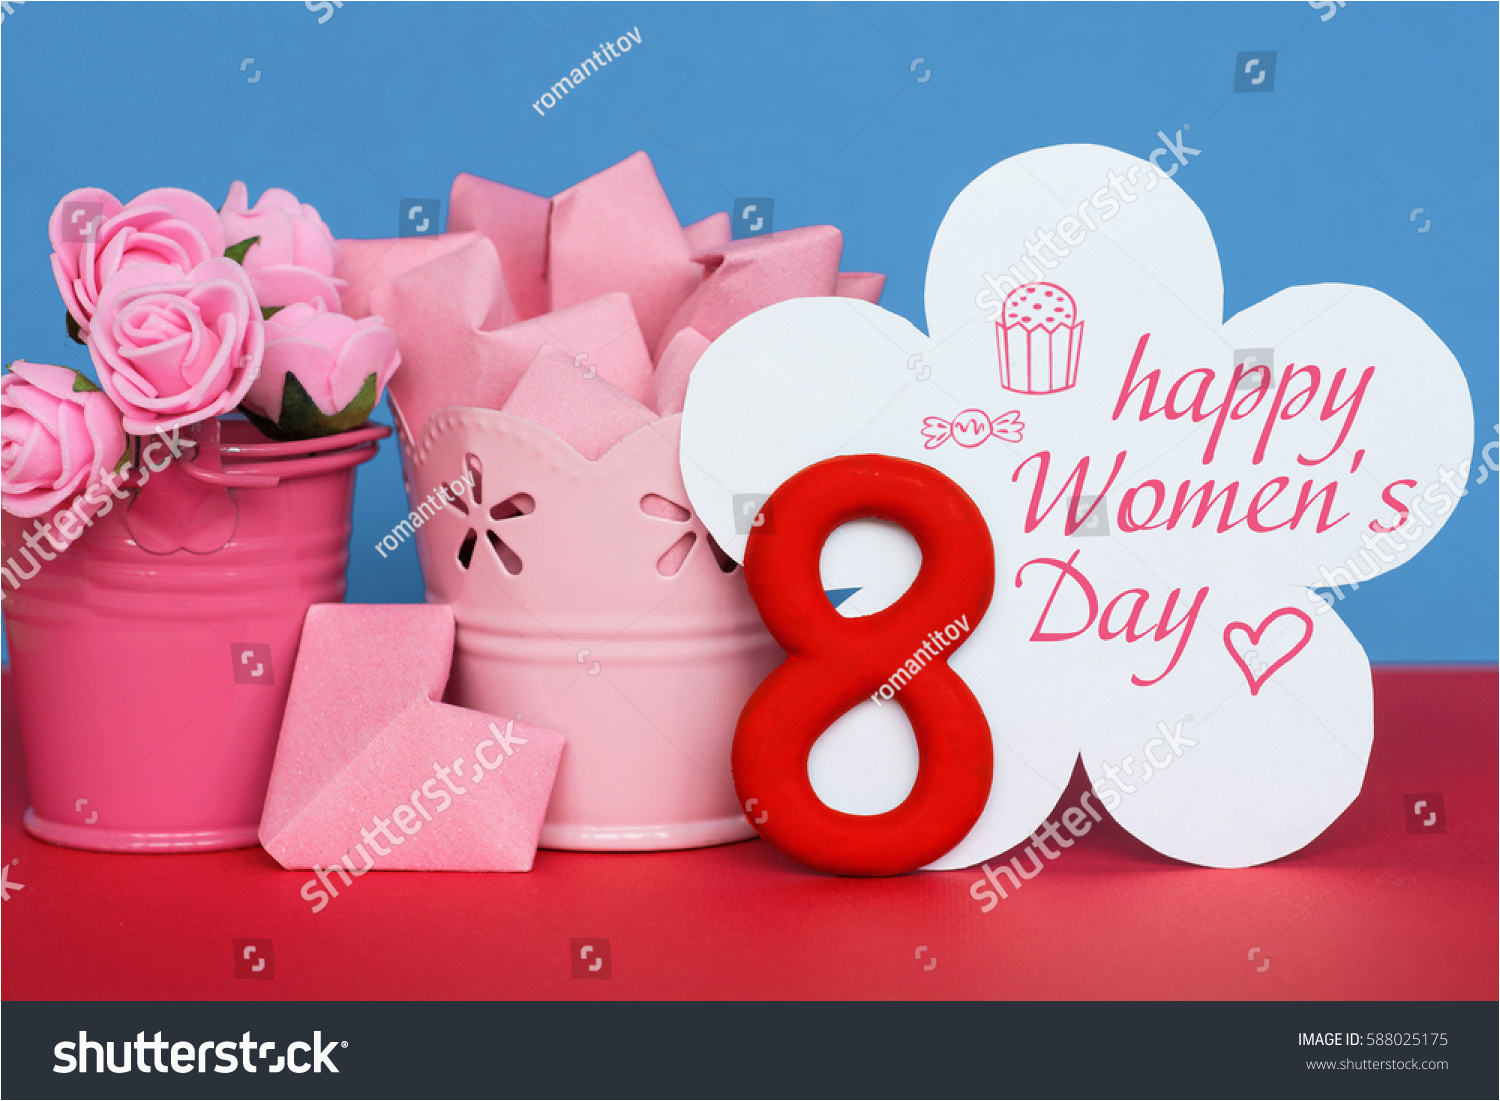 Women S Happy Birthday Card Womens Day March 8 Greeting Stock Photo 588025175